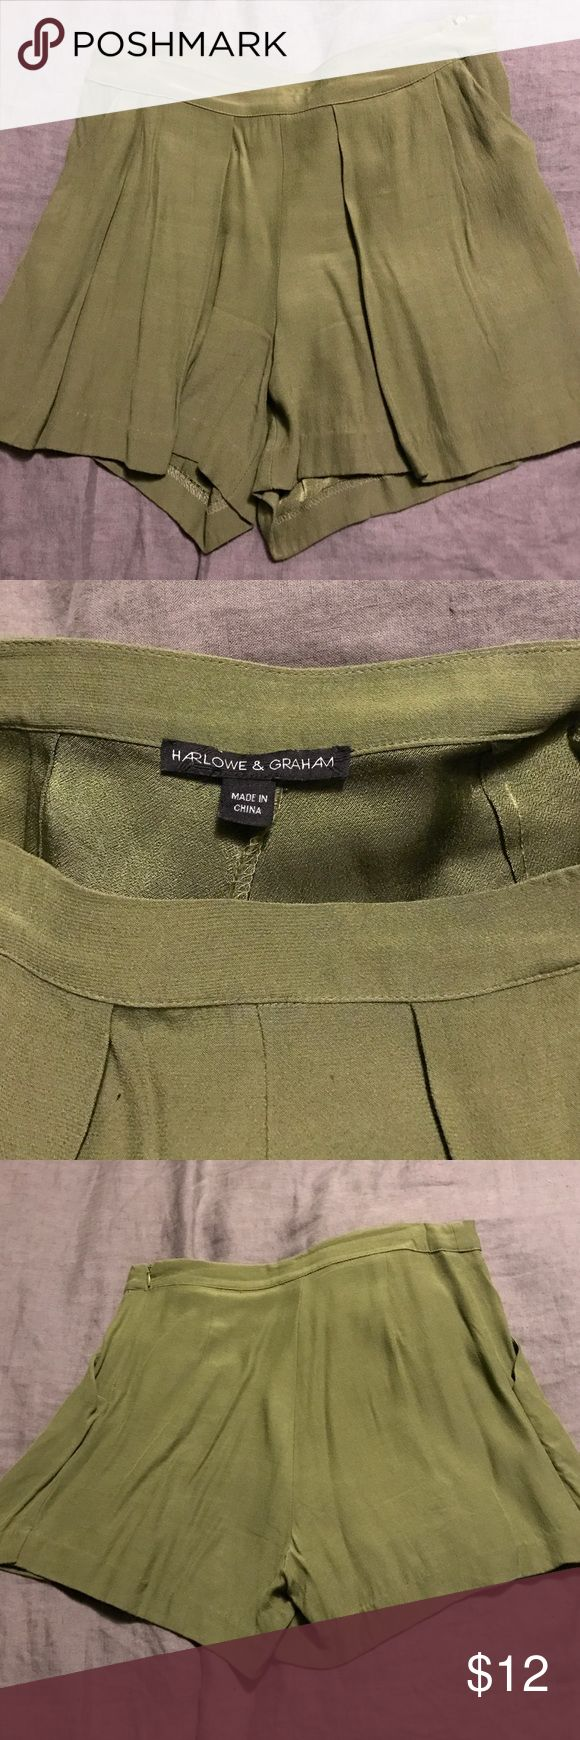 Harlow and Graham drapery olive shorts Harlow and Graham drapery olive shorts. Worn handful of times. Has slight pleating in the front. Approximately 14 inches in length from waist to hem. harlowe & graham Shorts